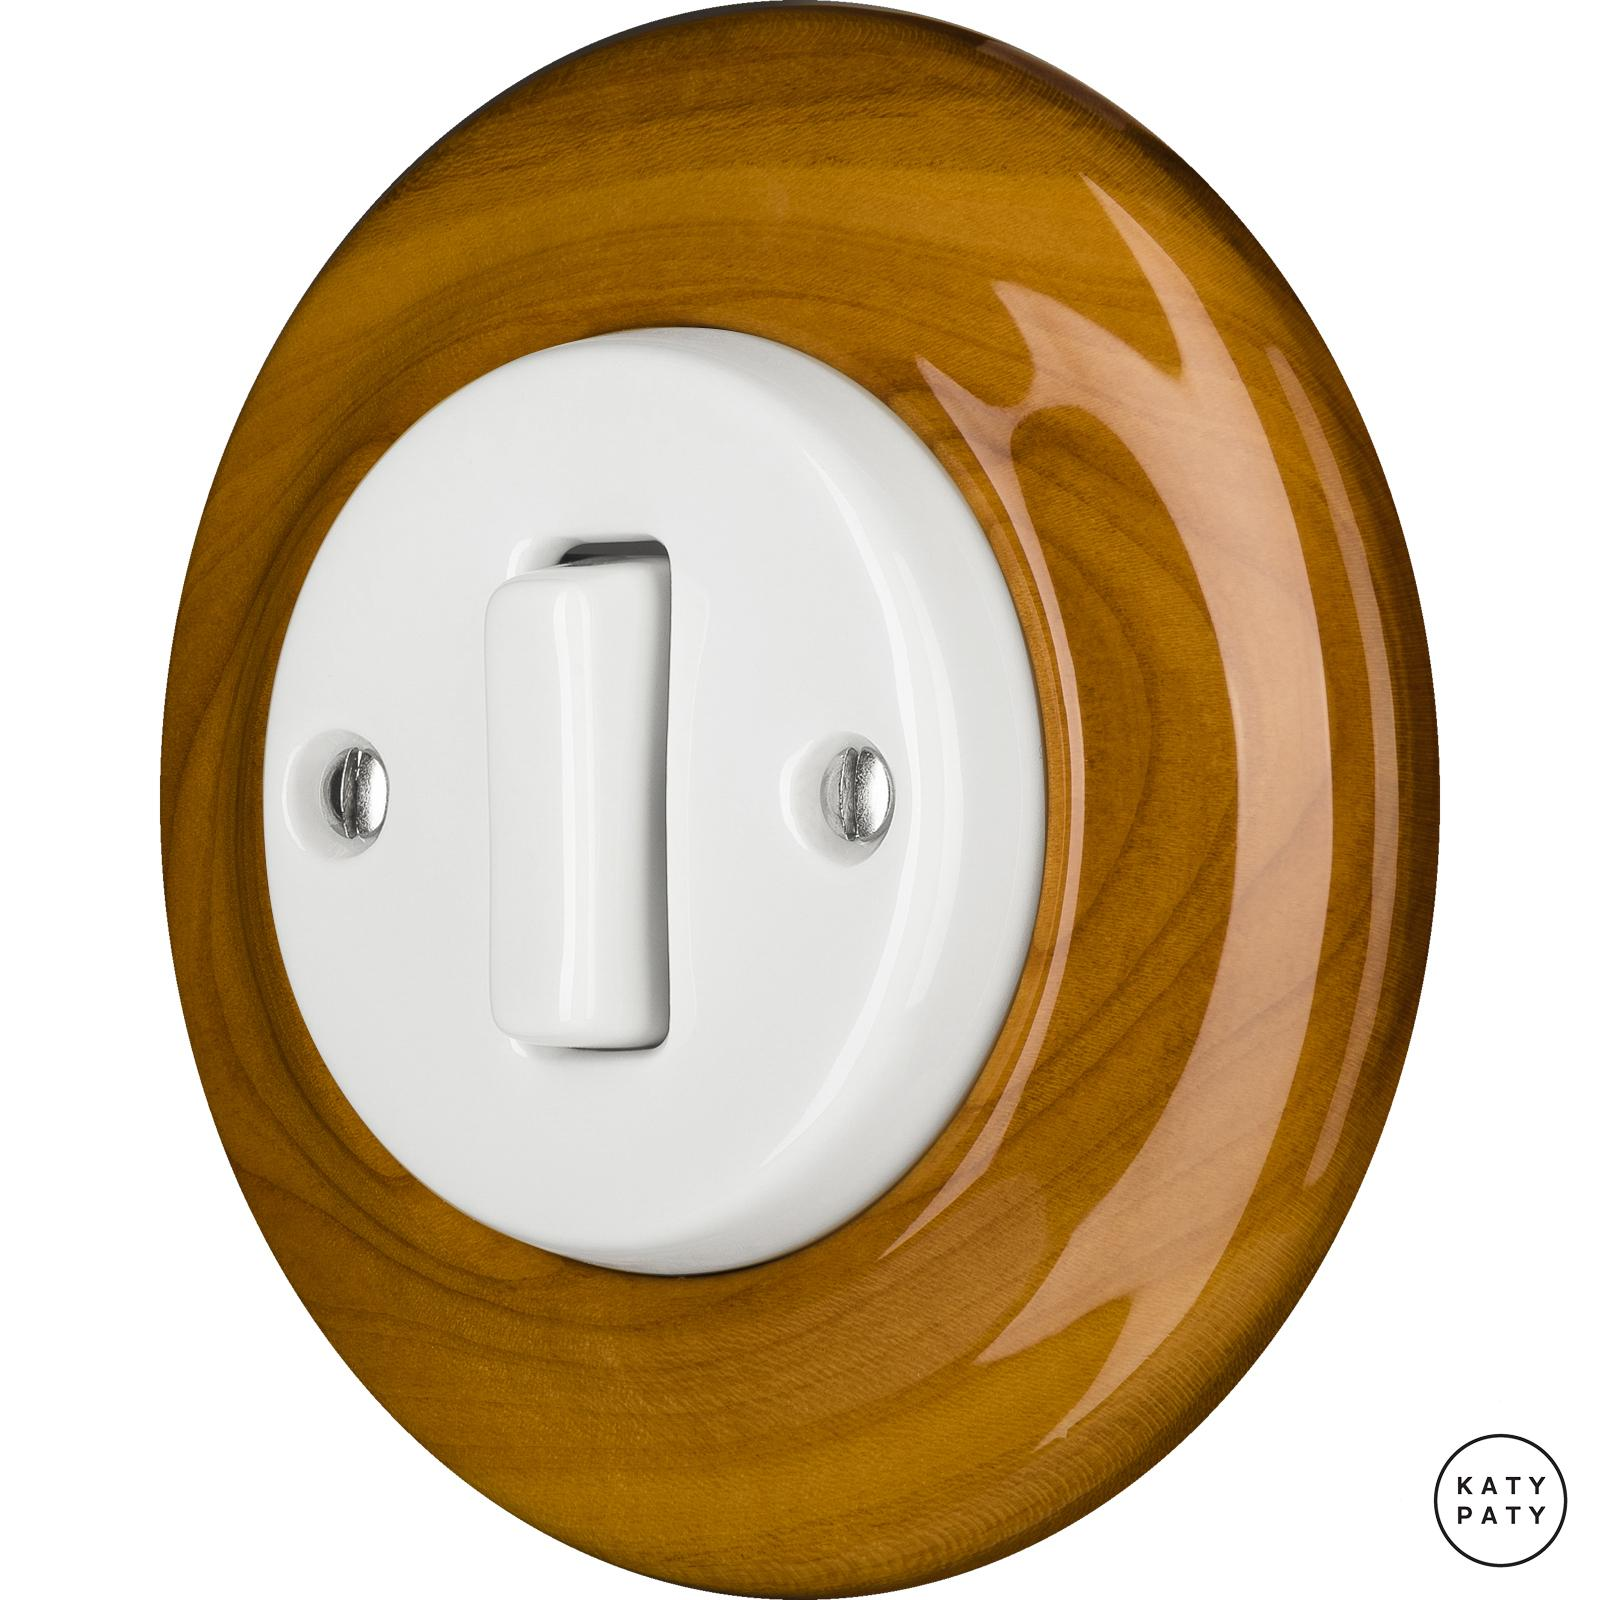 Porcelain switches - a single key - SLIM ()  - PADELUS | Katy Paty